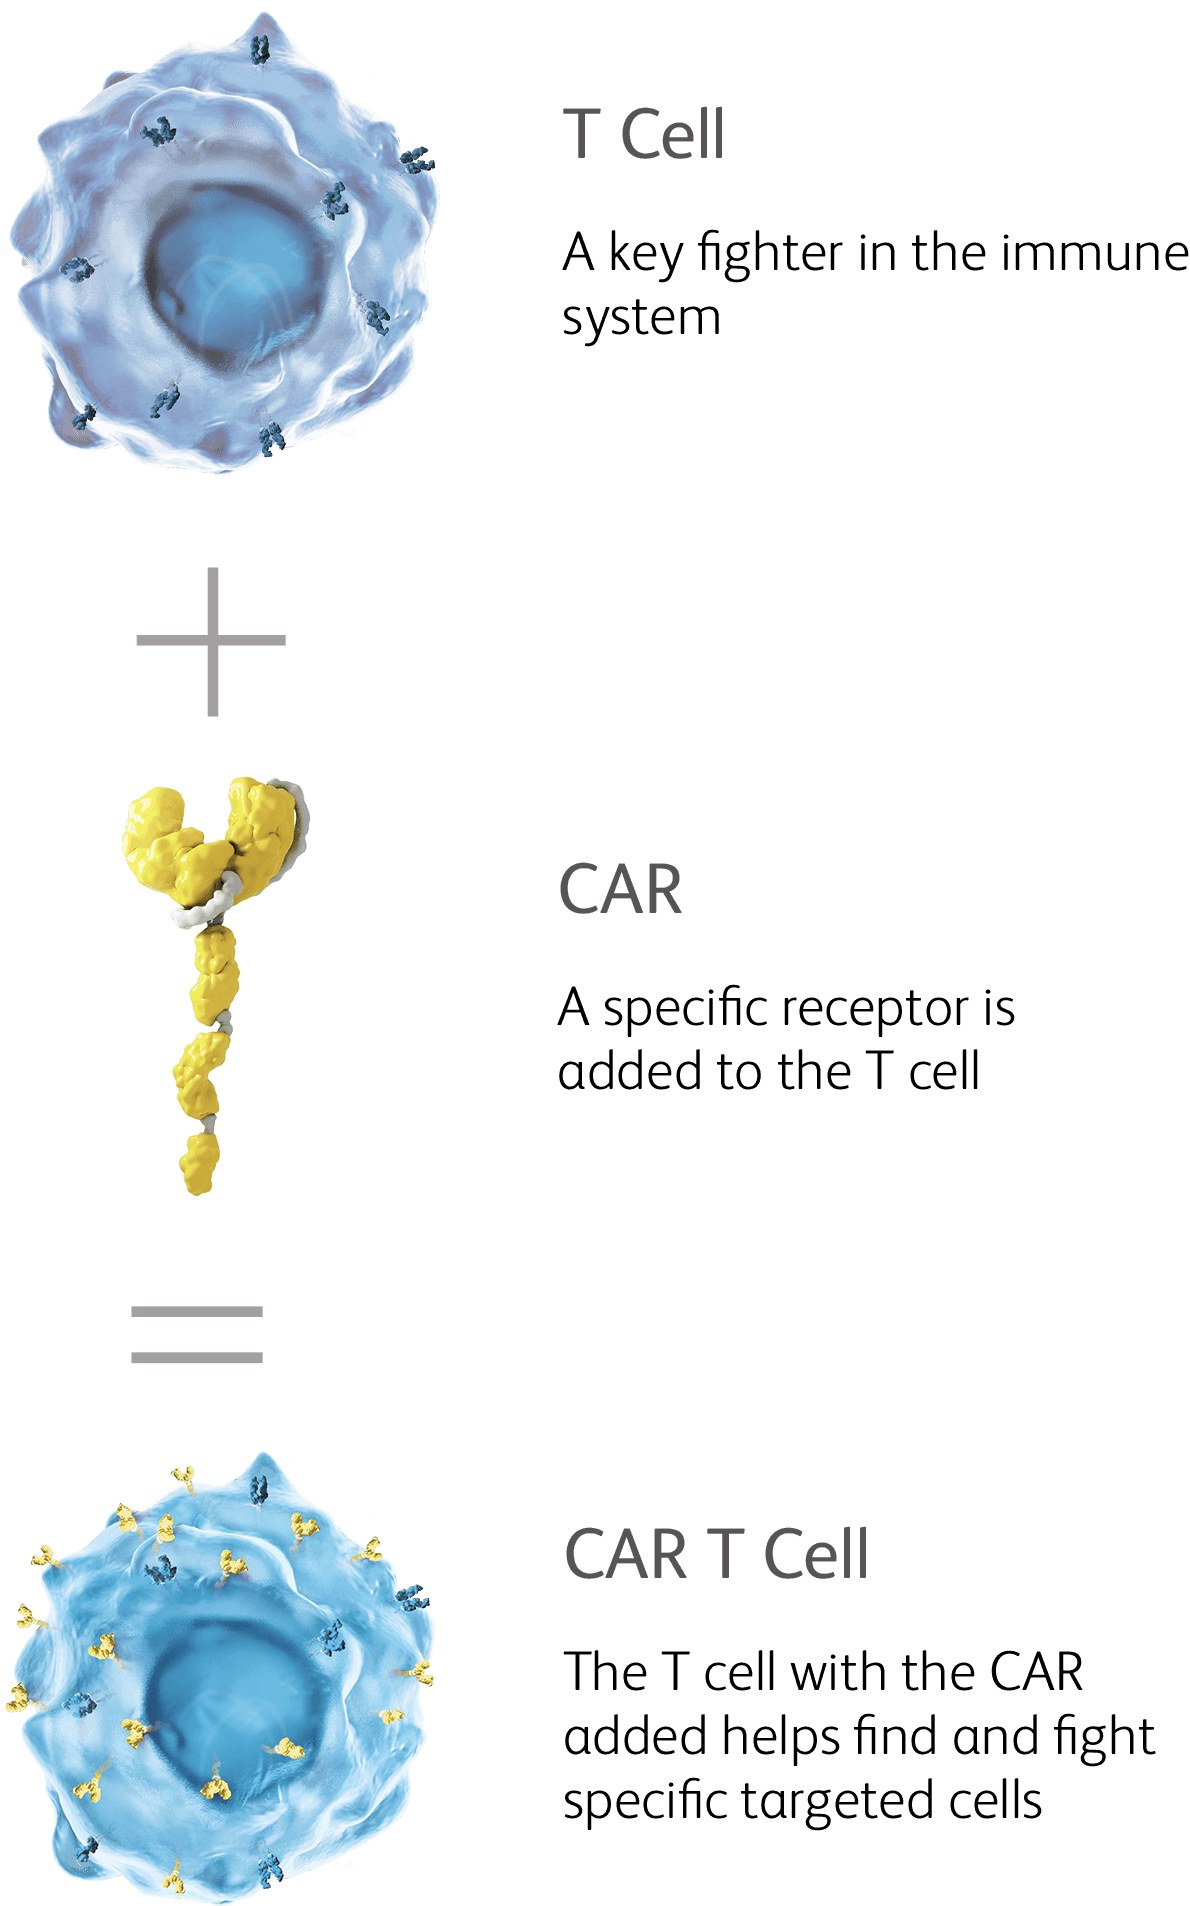 Figure that summarizes how a CAR is developed: T Cell + CAR = CAR T Cell